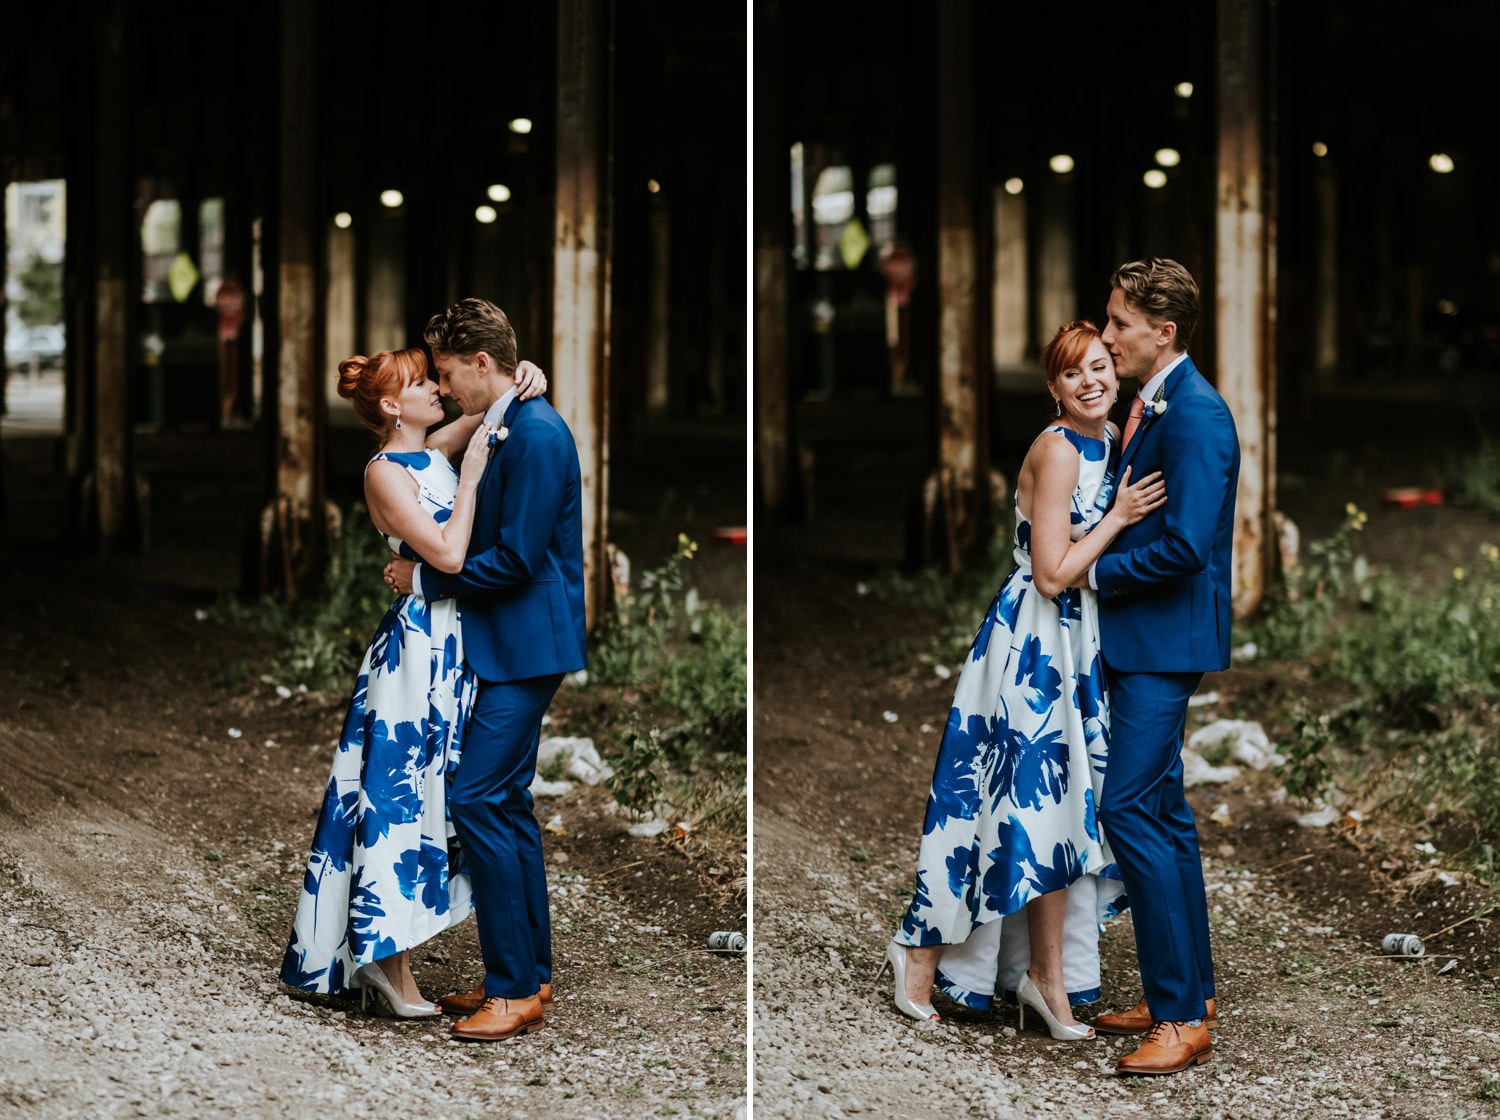 Modern Portrait of the bride and groom taken on their elopement. Photograph taken under the train bridge in Chicago